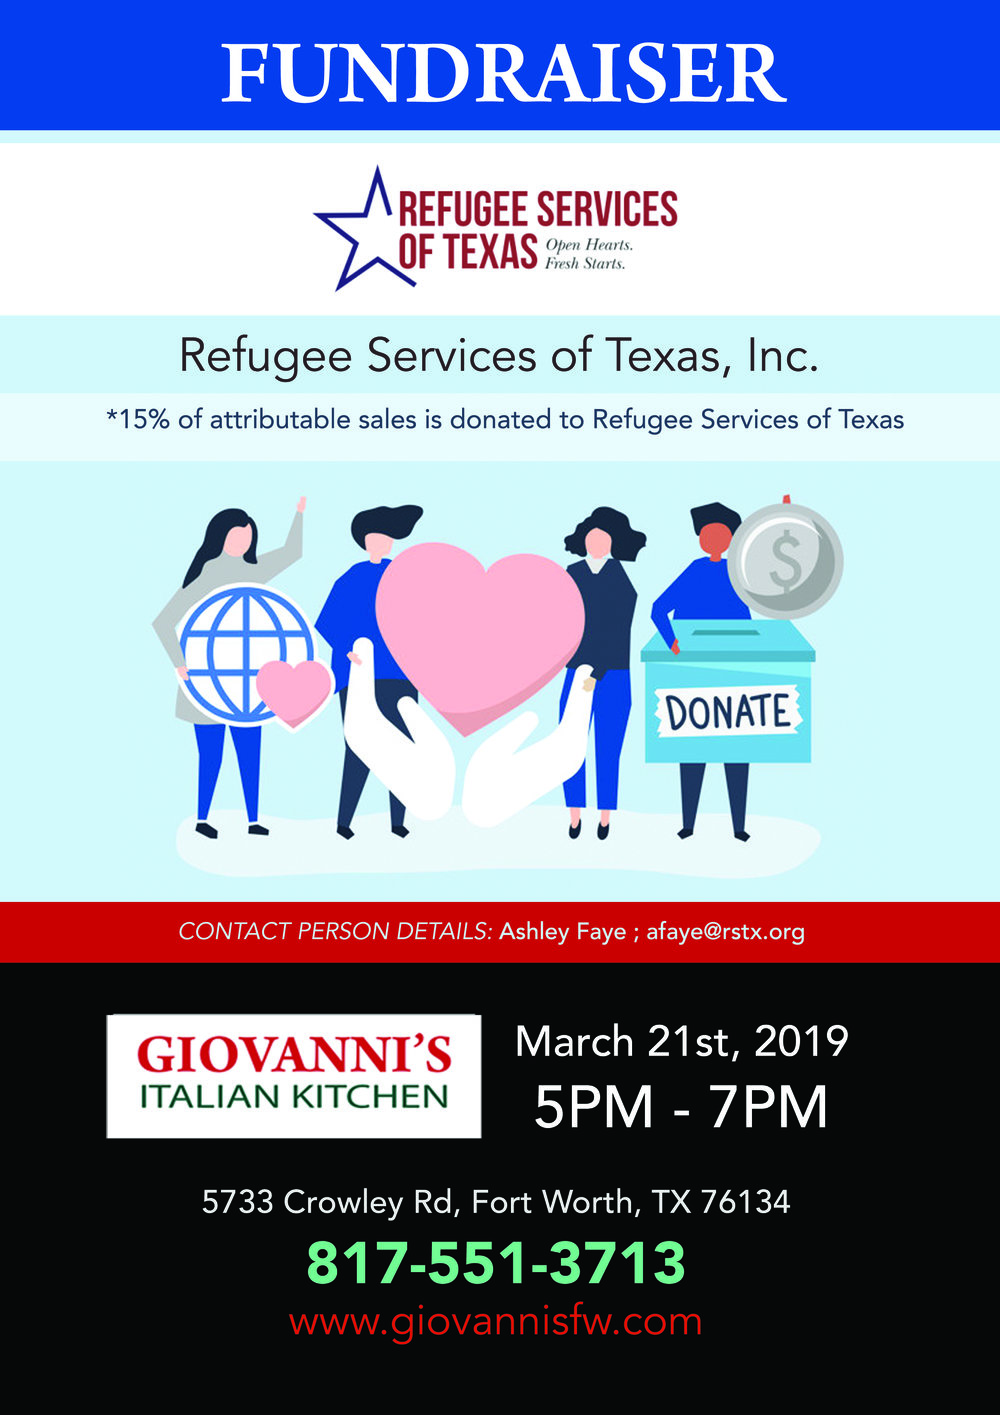 Giovannis Fundraiser Poster March 2019 (1).jpg